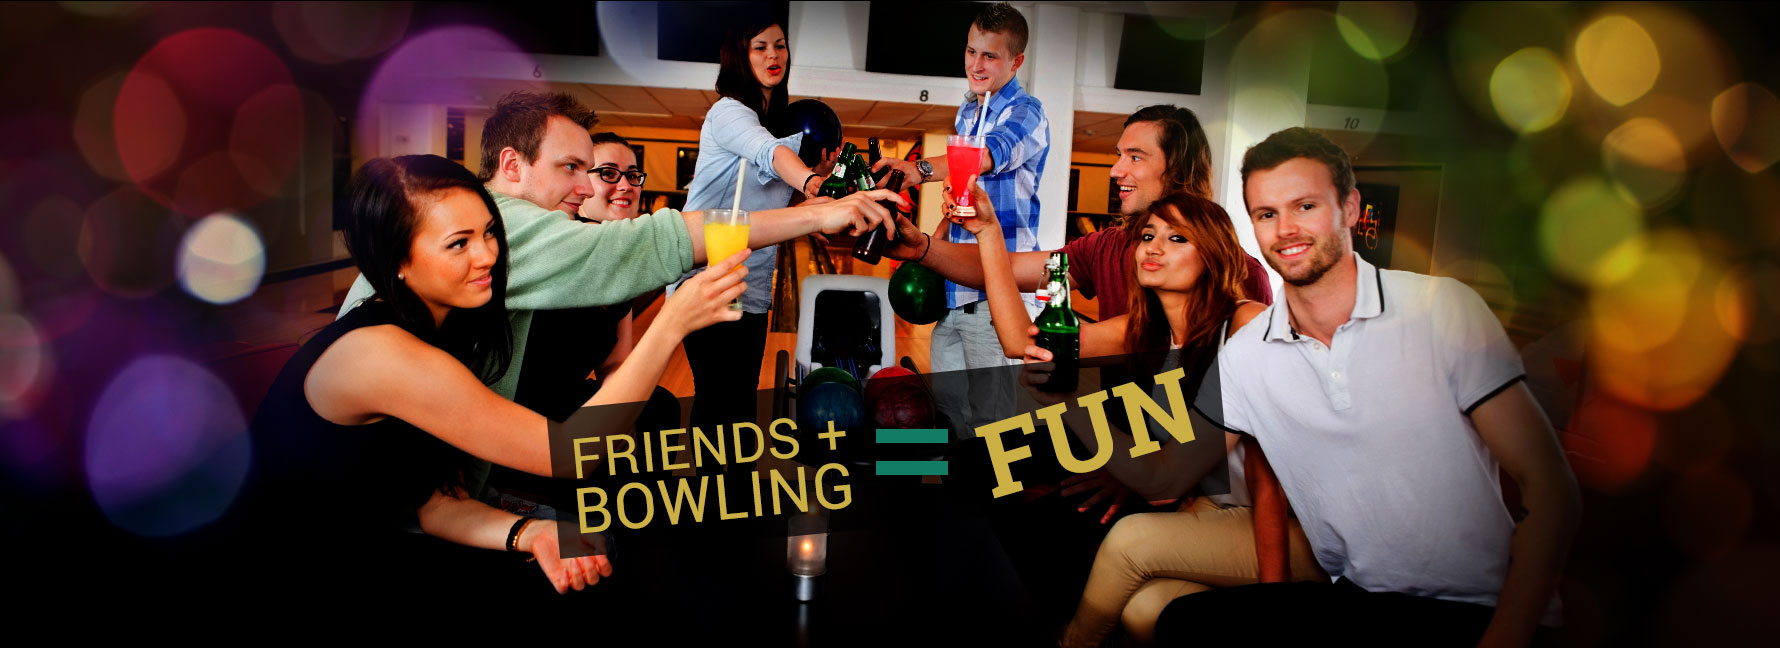 Friends and Bowling means Fun